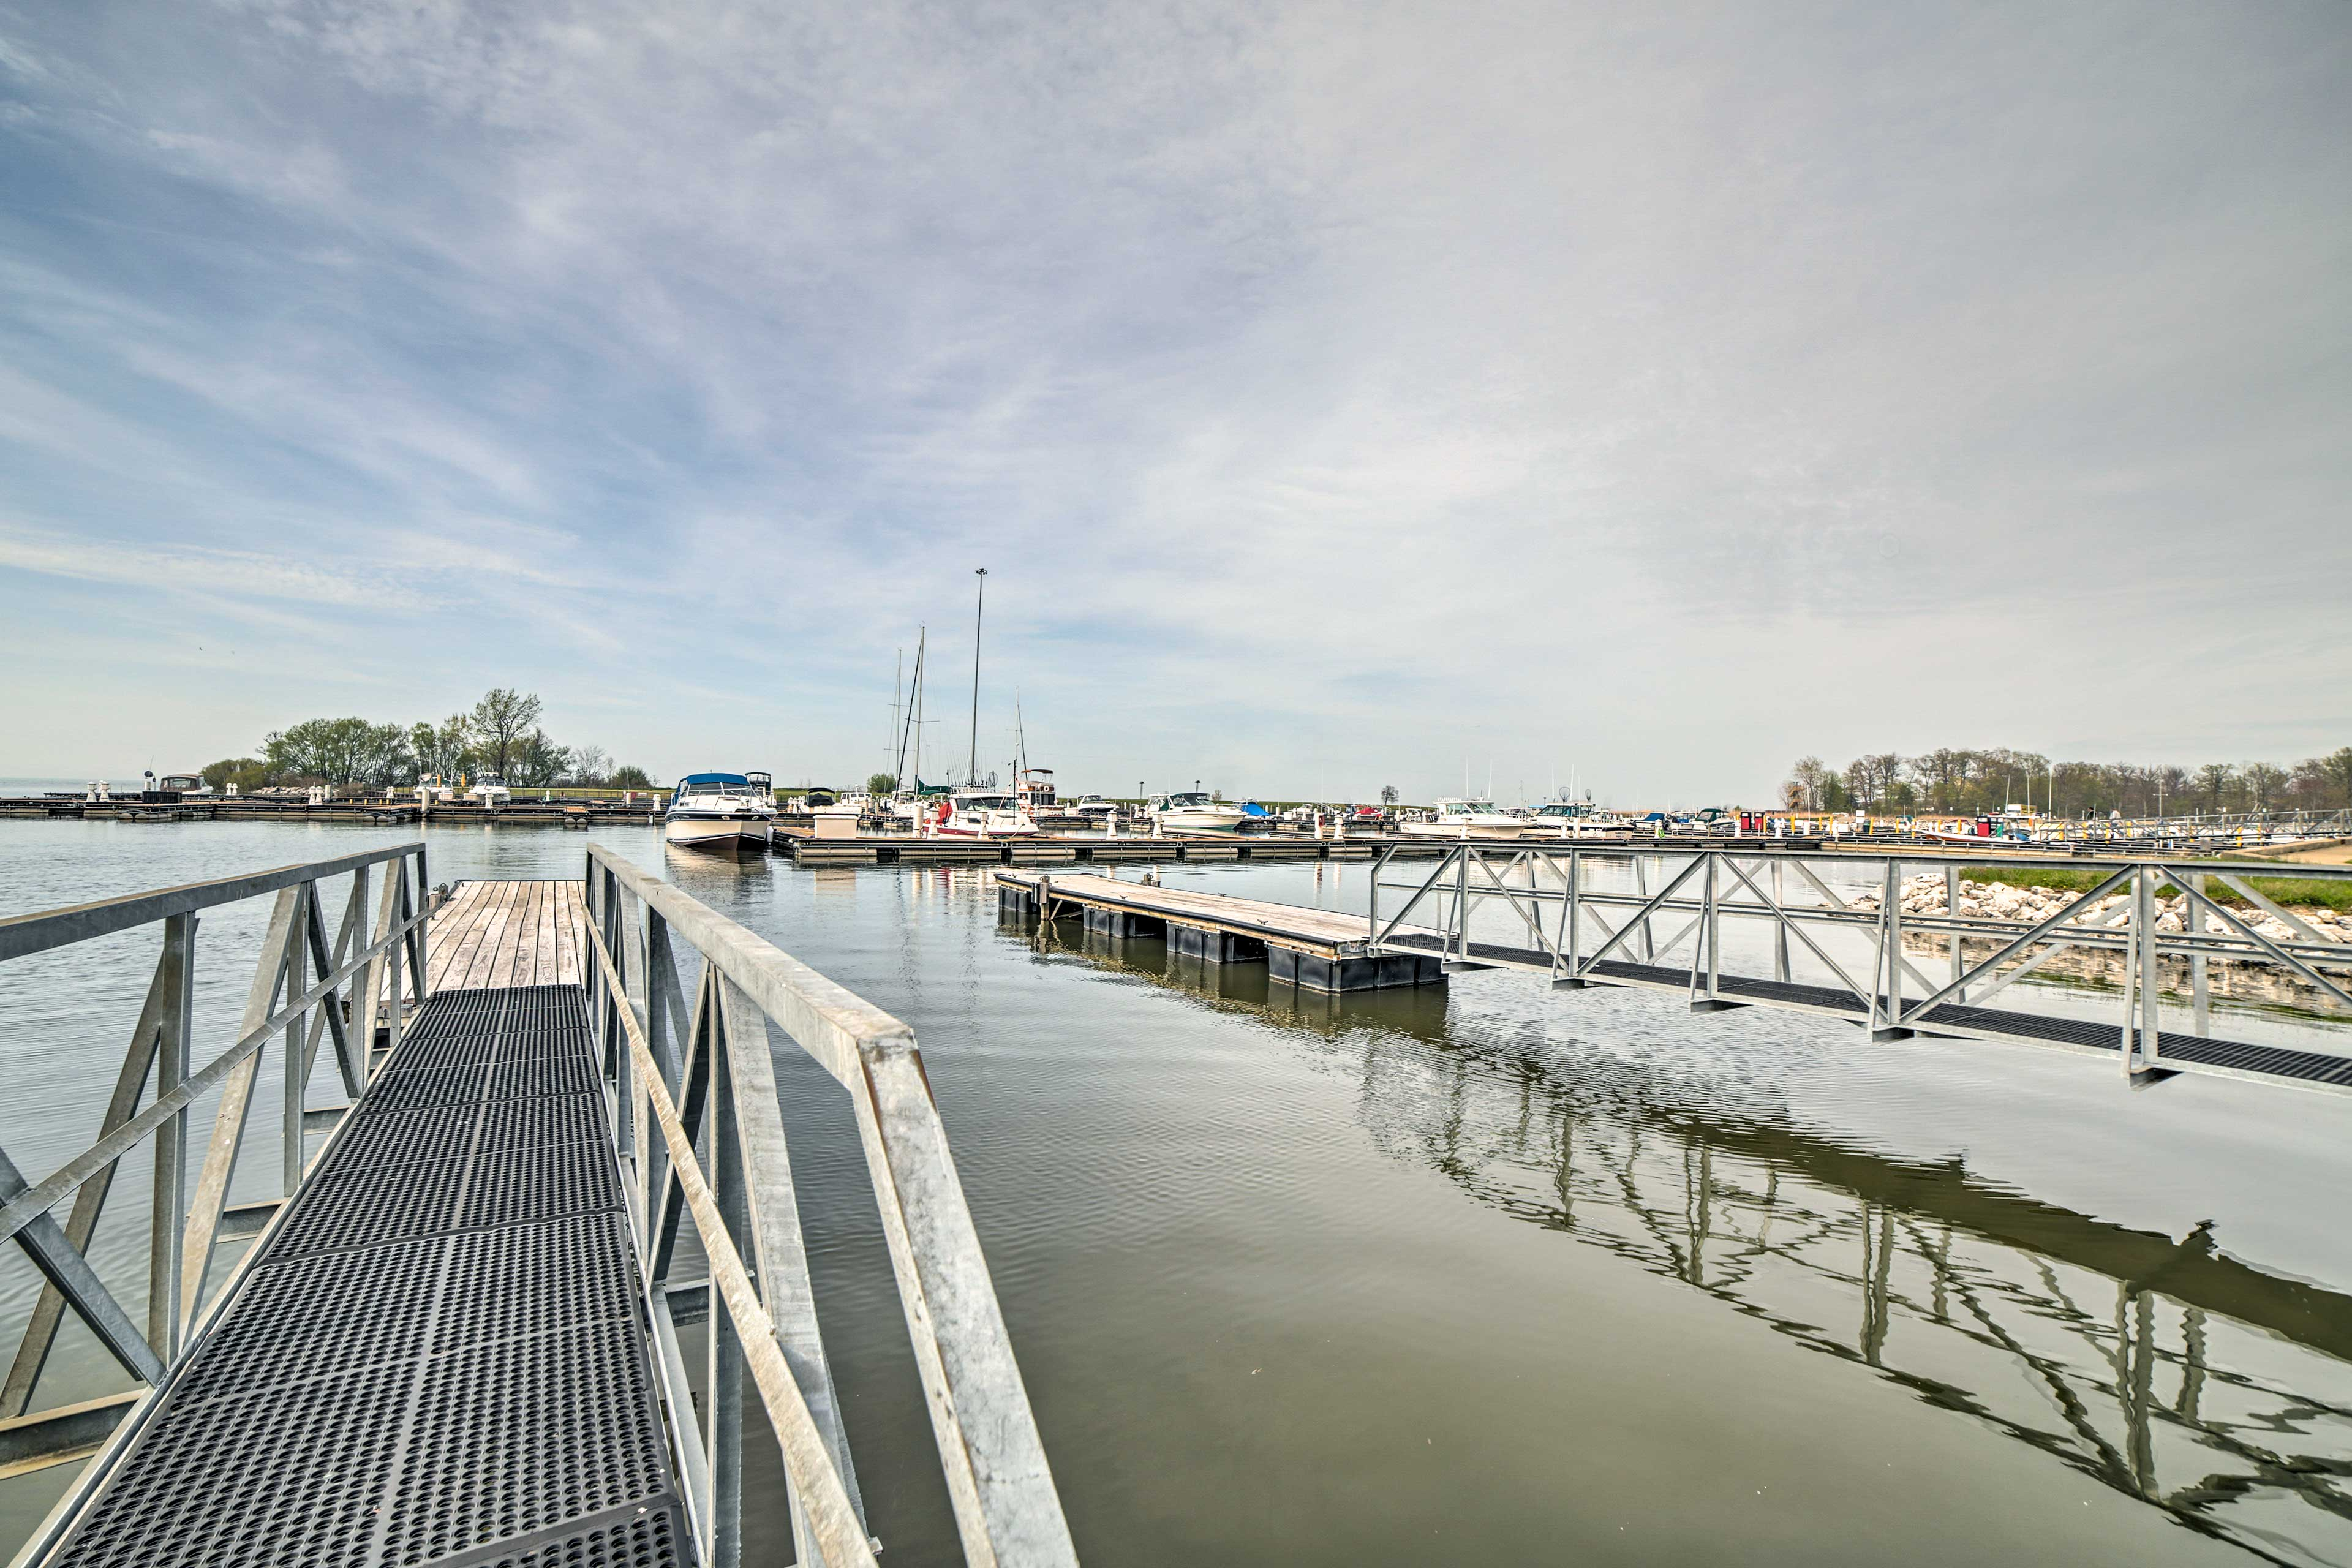 Head a few miles to the marina for a boating adventure.